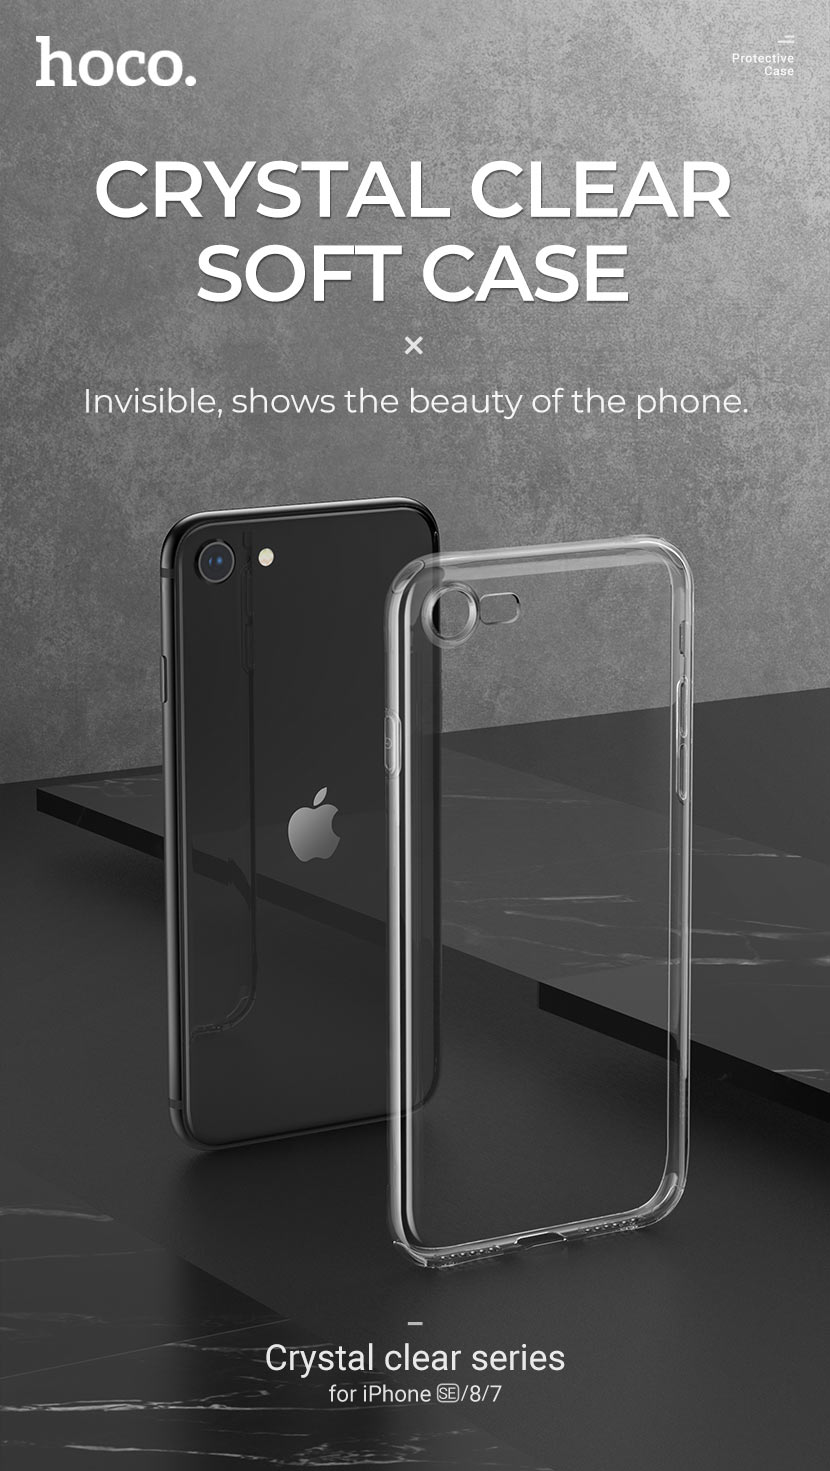 hoco news new iphone se protective cases crystal clear series soft en